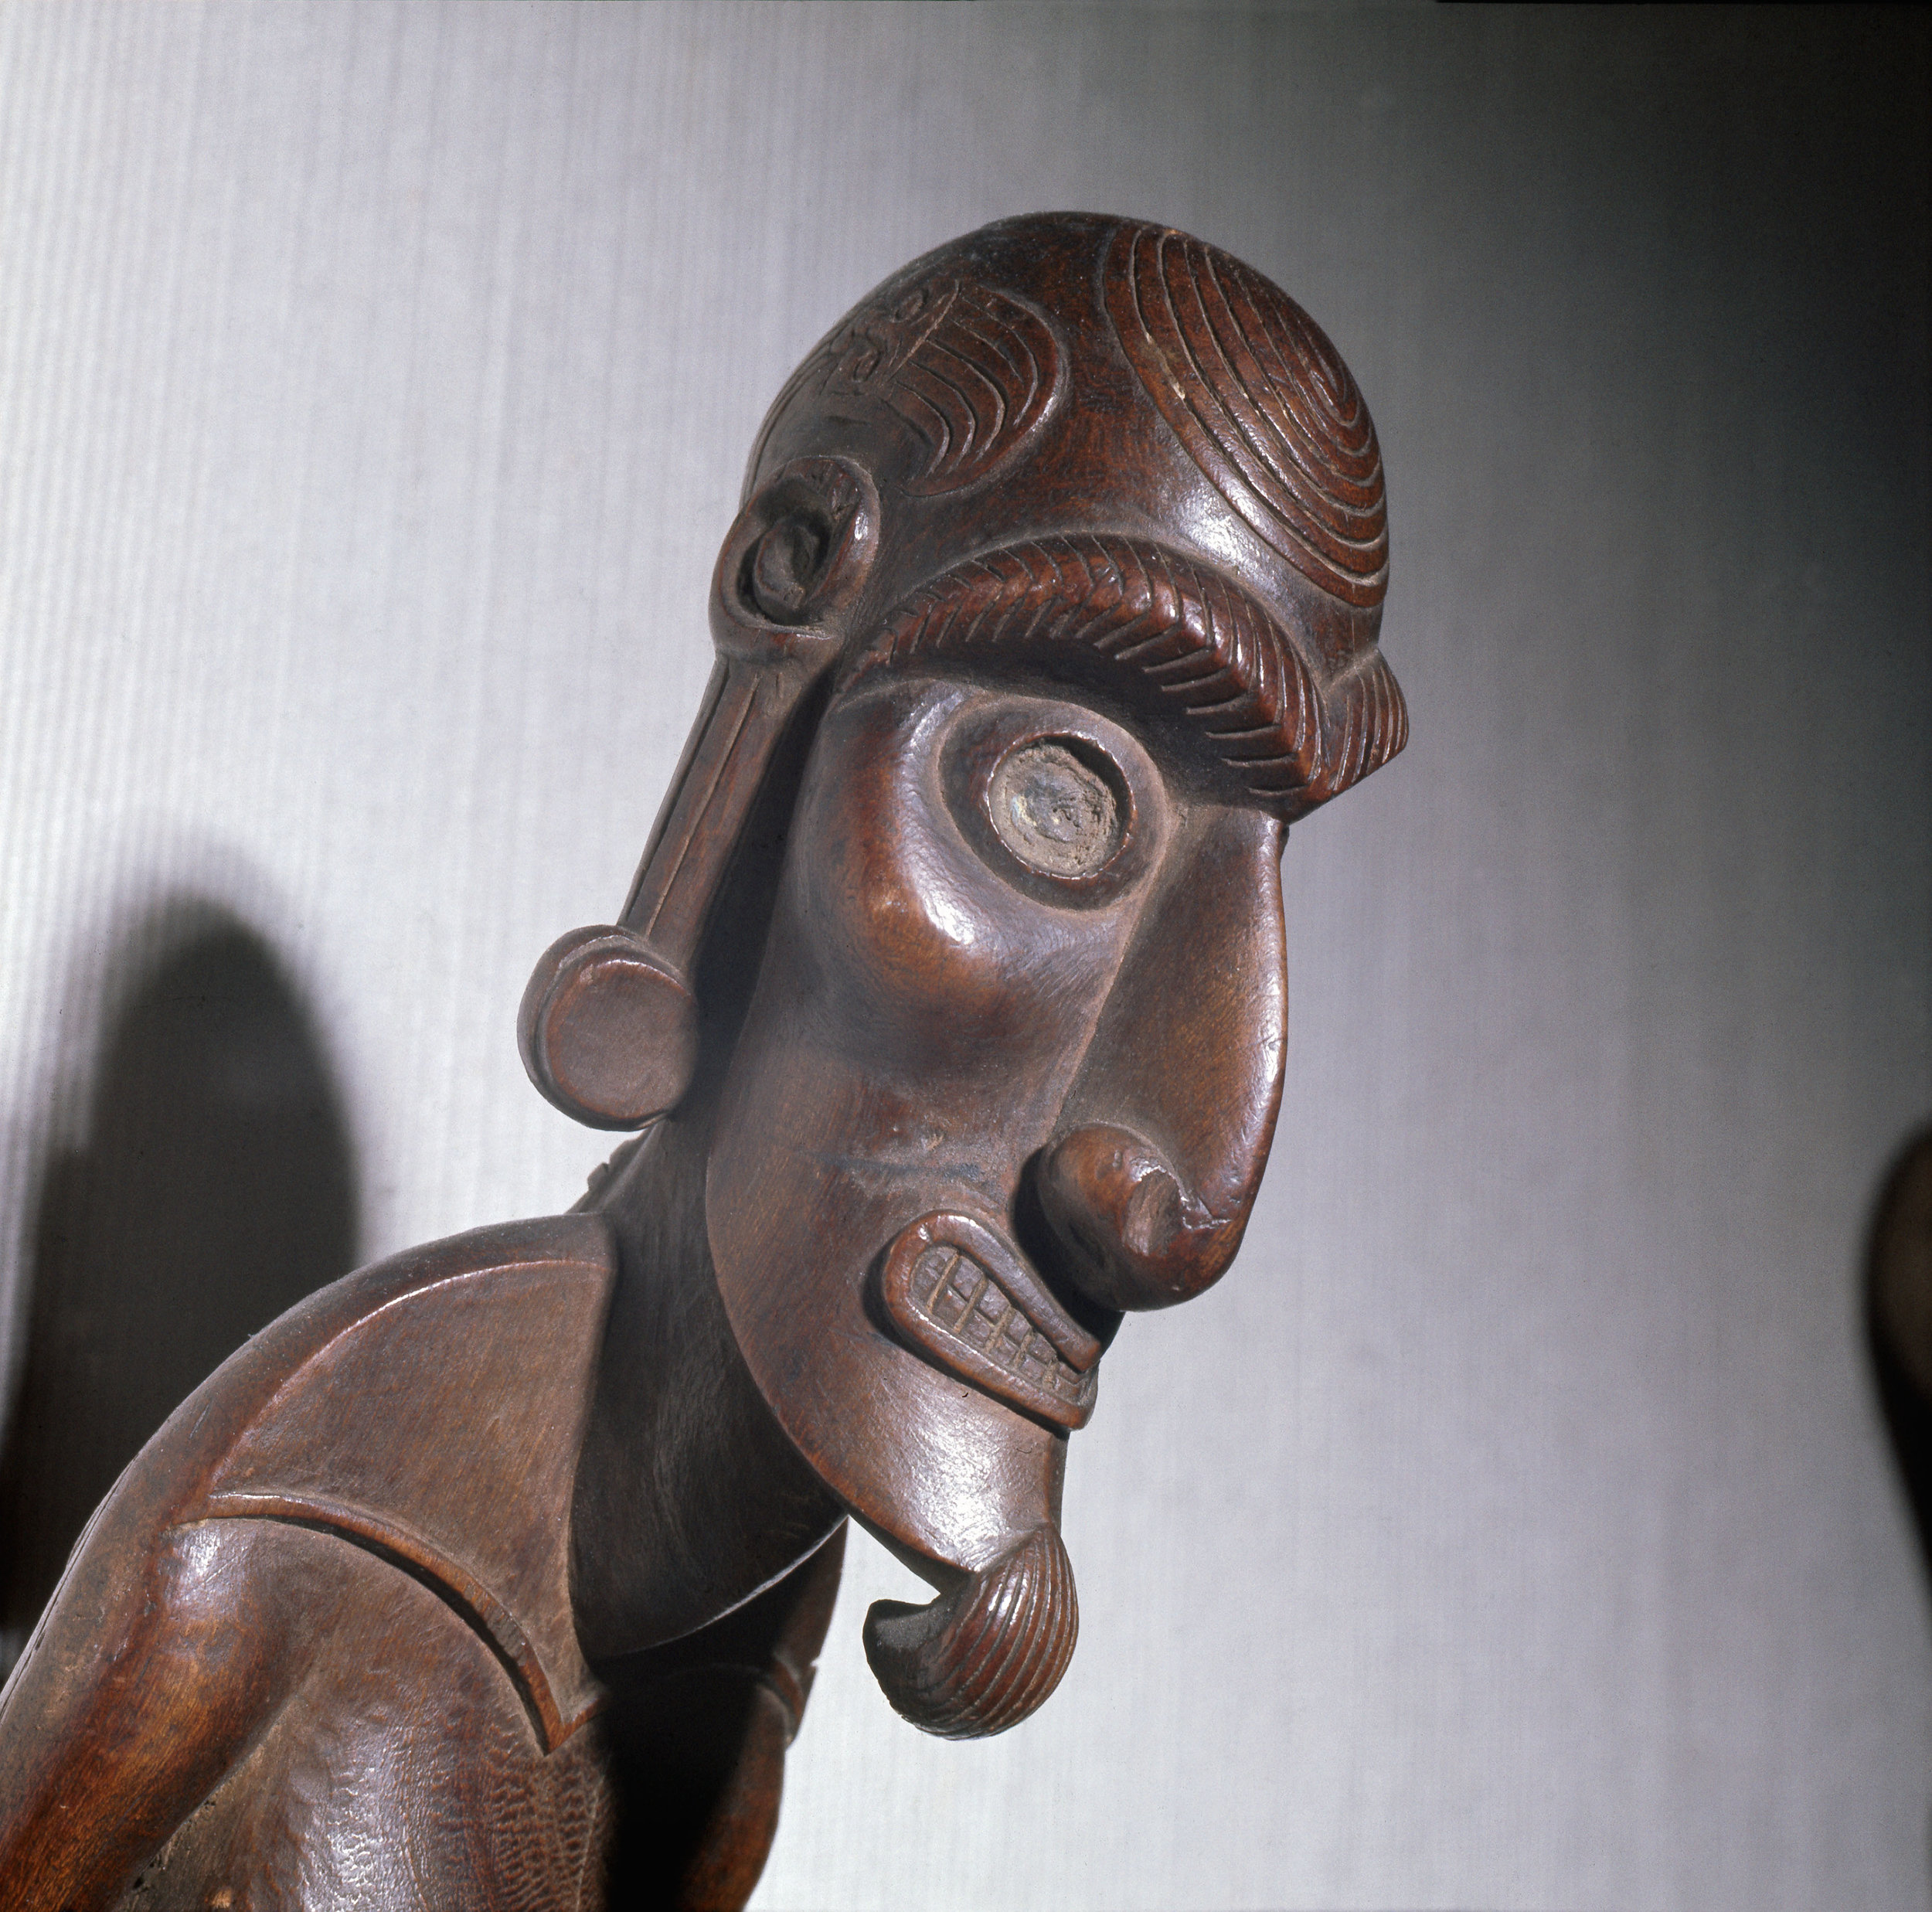 An ancestral figure known as a 'moai kavakava', emaciated man, worn hung onto its owner at dances and feasts. The more a man wore, sometimes as many as ten or twenty, the more likely were the gods to grant his requests. Country of Origin: Easter Island. Culture: Oceanic. Date/Period: 19th C. Material Size: Wood, h= 47cms. Credit Line: Werner Forman Archive / British Museum, London.